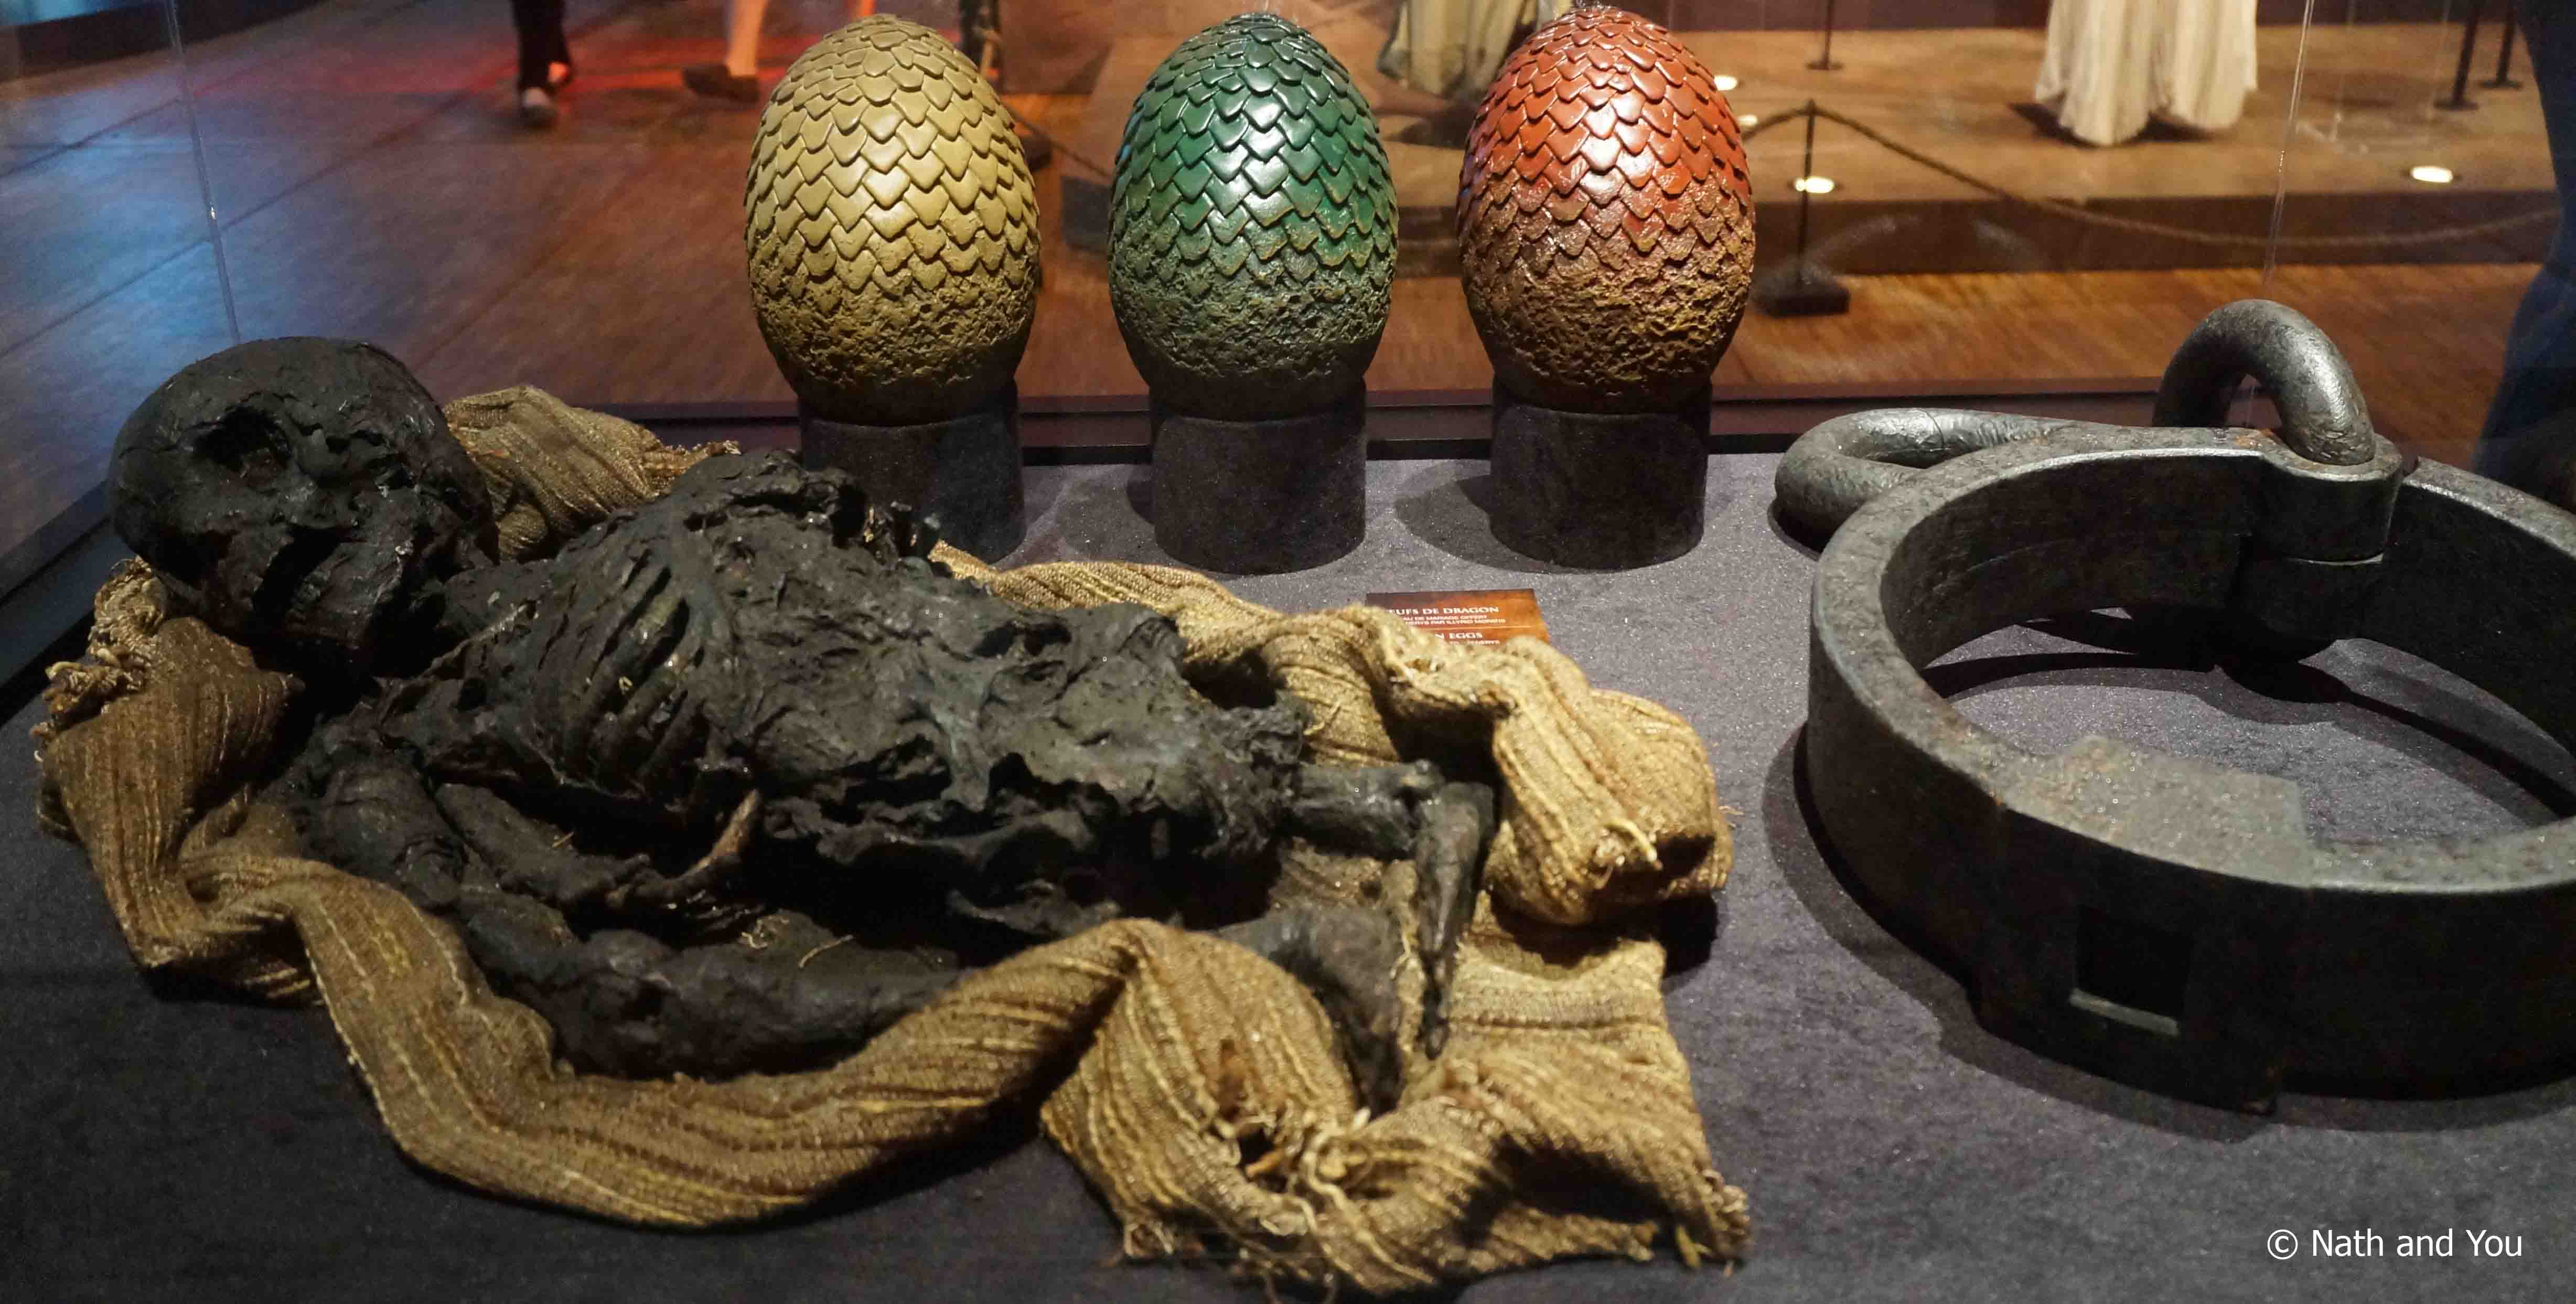 Oeufs-Dragon-Exposition-Game-of-Thrones-Nath-and-you